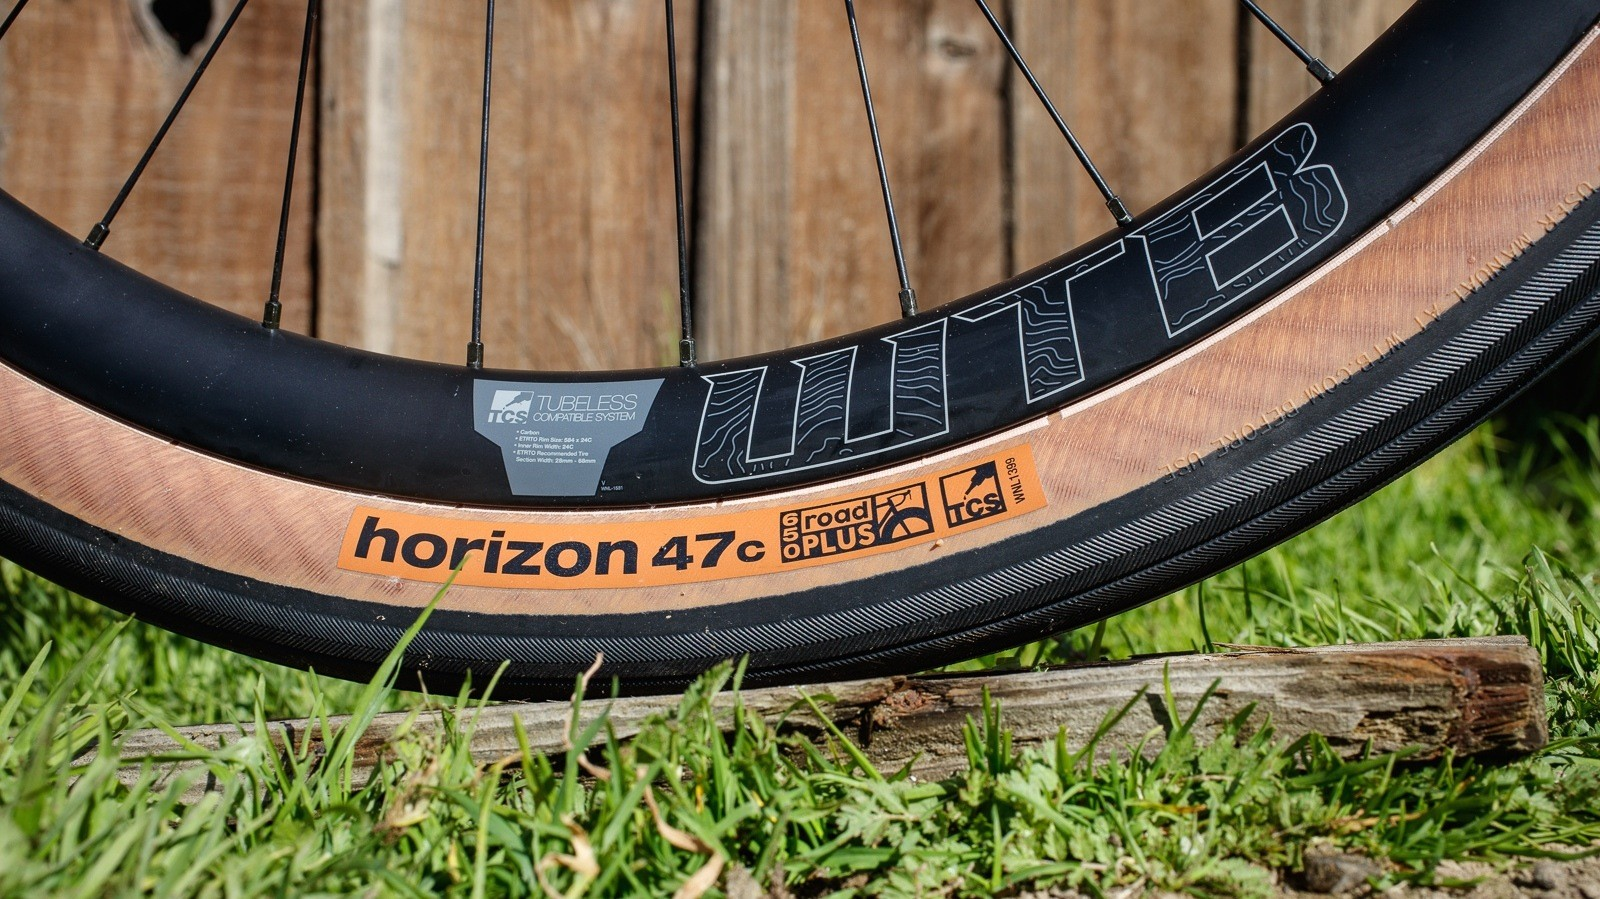 The Horizon Road Plus is a 650b tyre so plump that its total diameter equals that of a 700c 30mm tyre